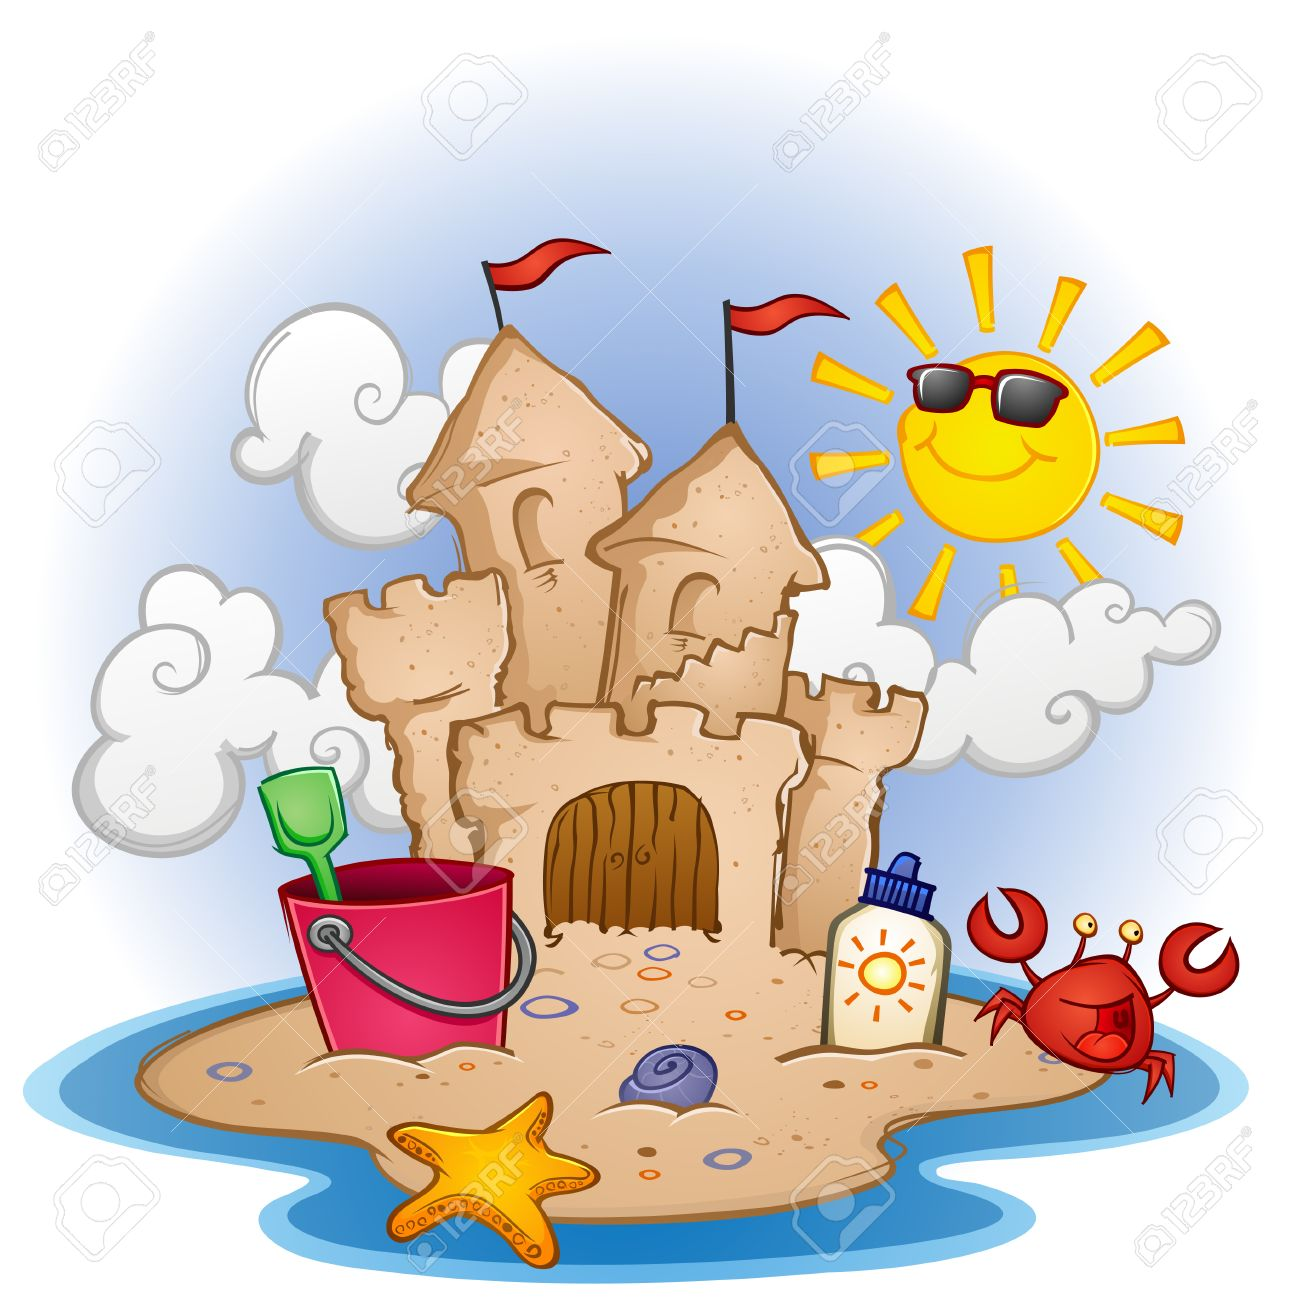 1 527 sandcastle cliparts stock vector and royalty free sandcastle rh 123rf com sand castle clipart sand castle clip art free